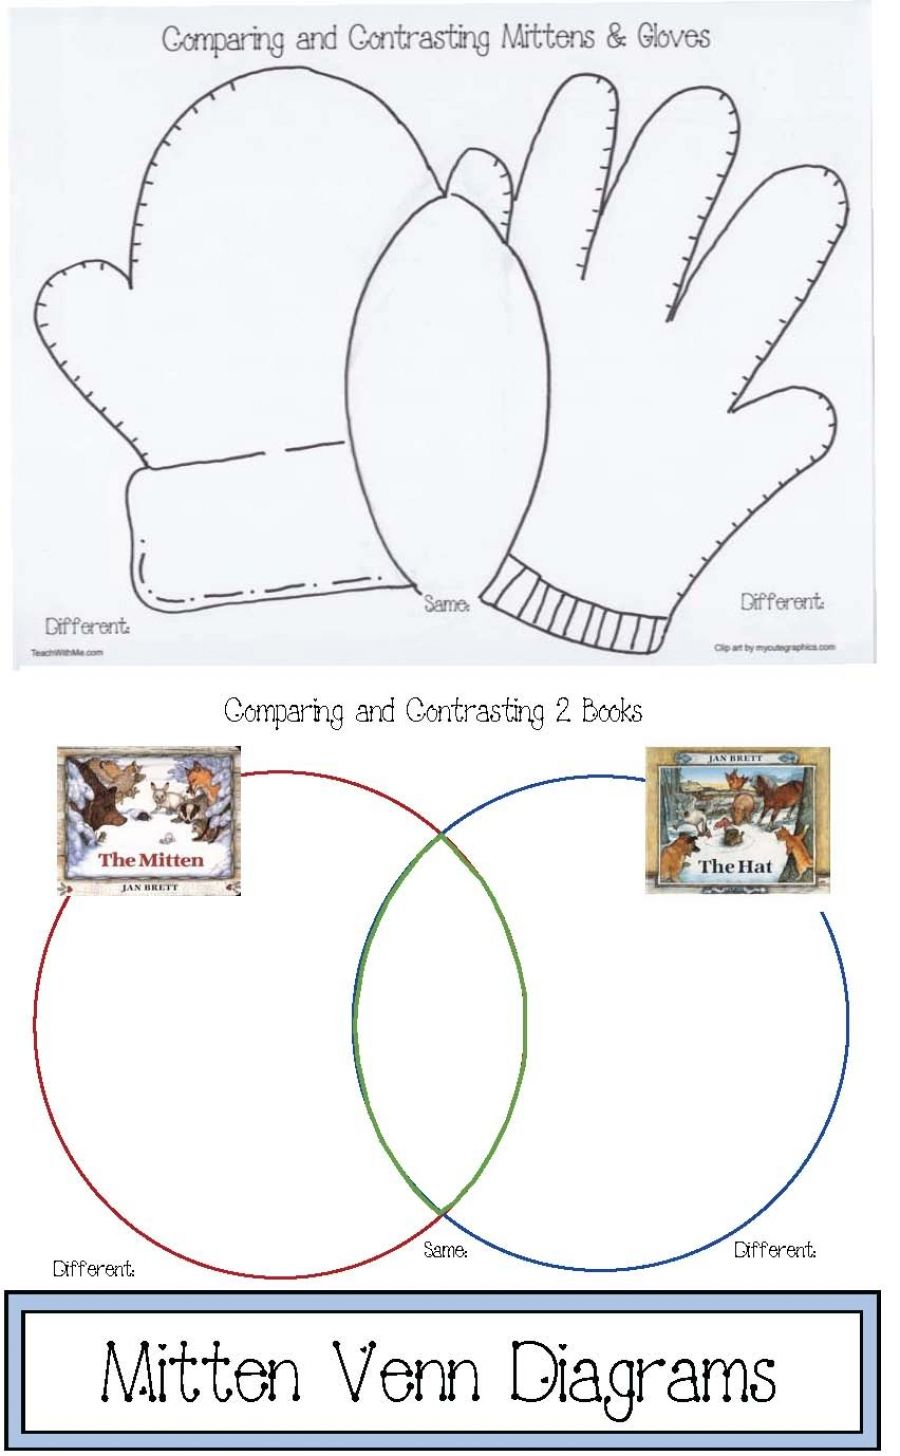 Mitten venn diagrams venn diagrams mittens and diagram mitten venn diagrams 5 pages packet includes 3 mitten venn diagrams including 1 where students compare and contrast 2 animal characters from the story ccuart